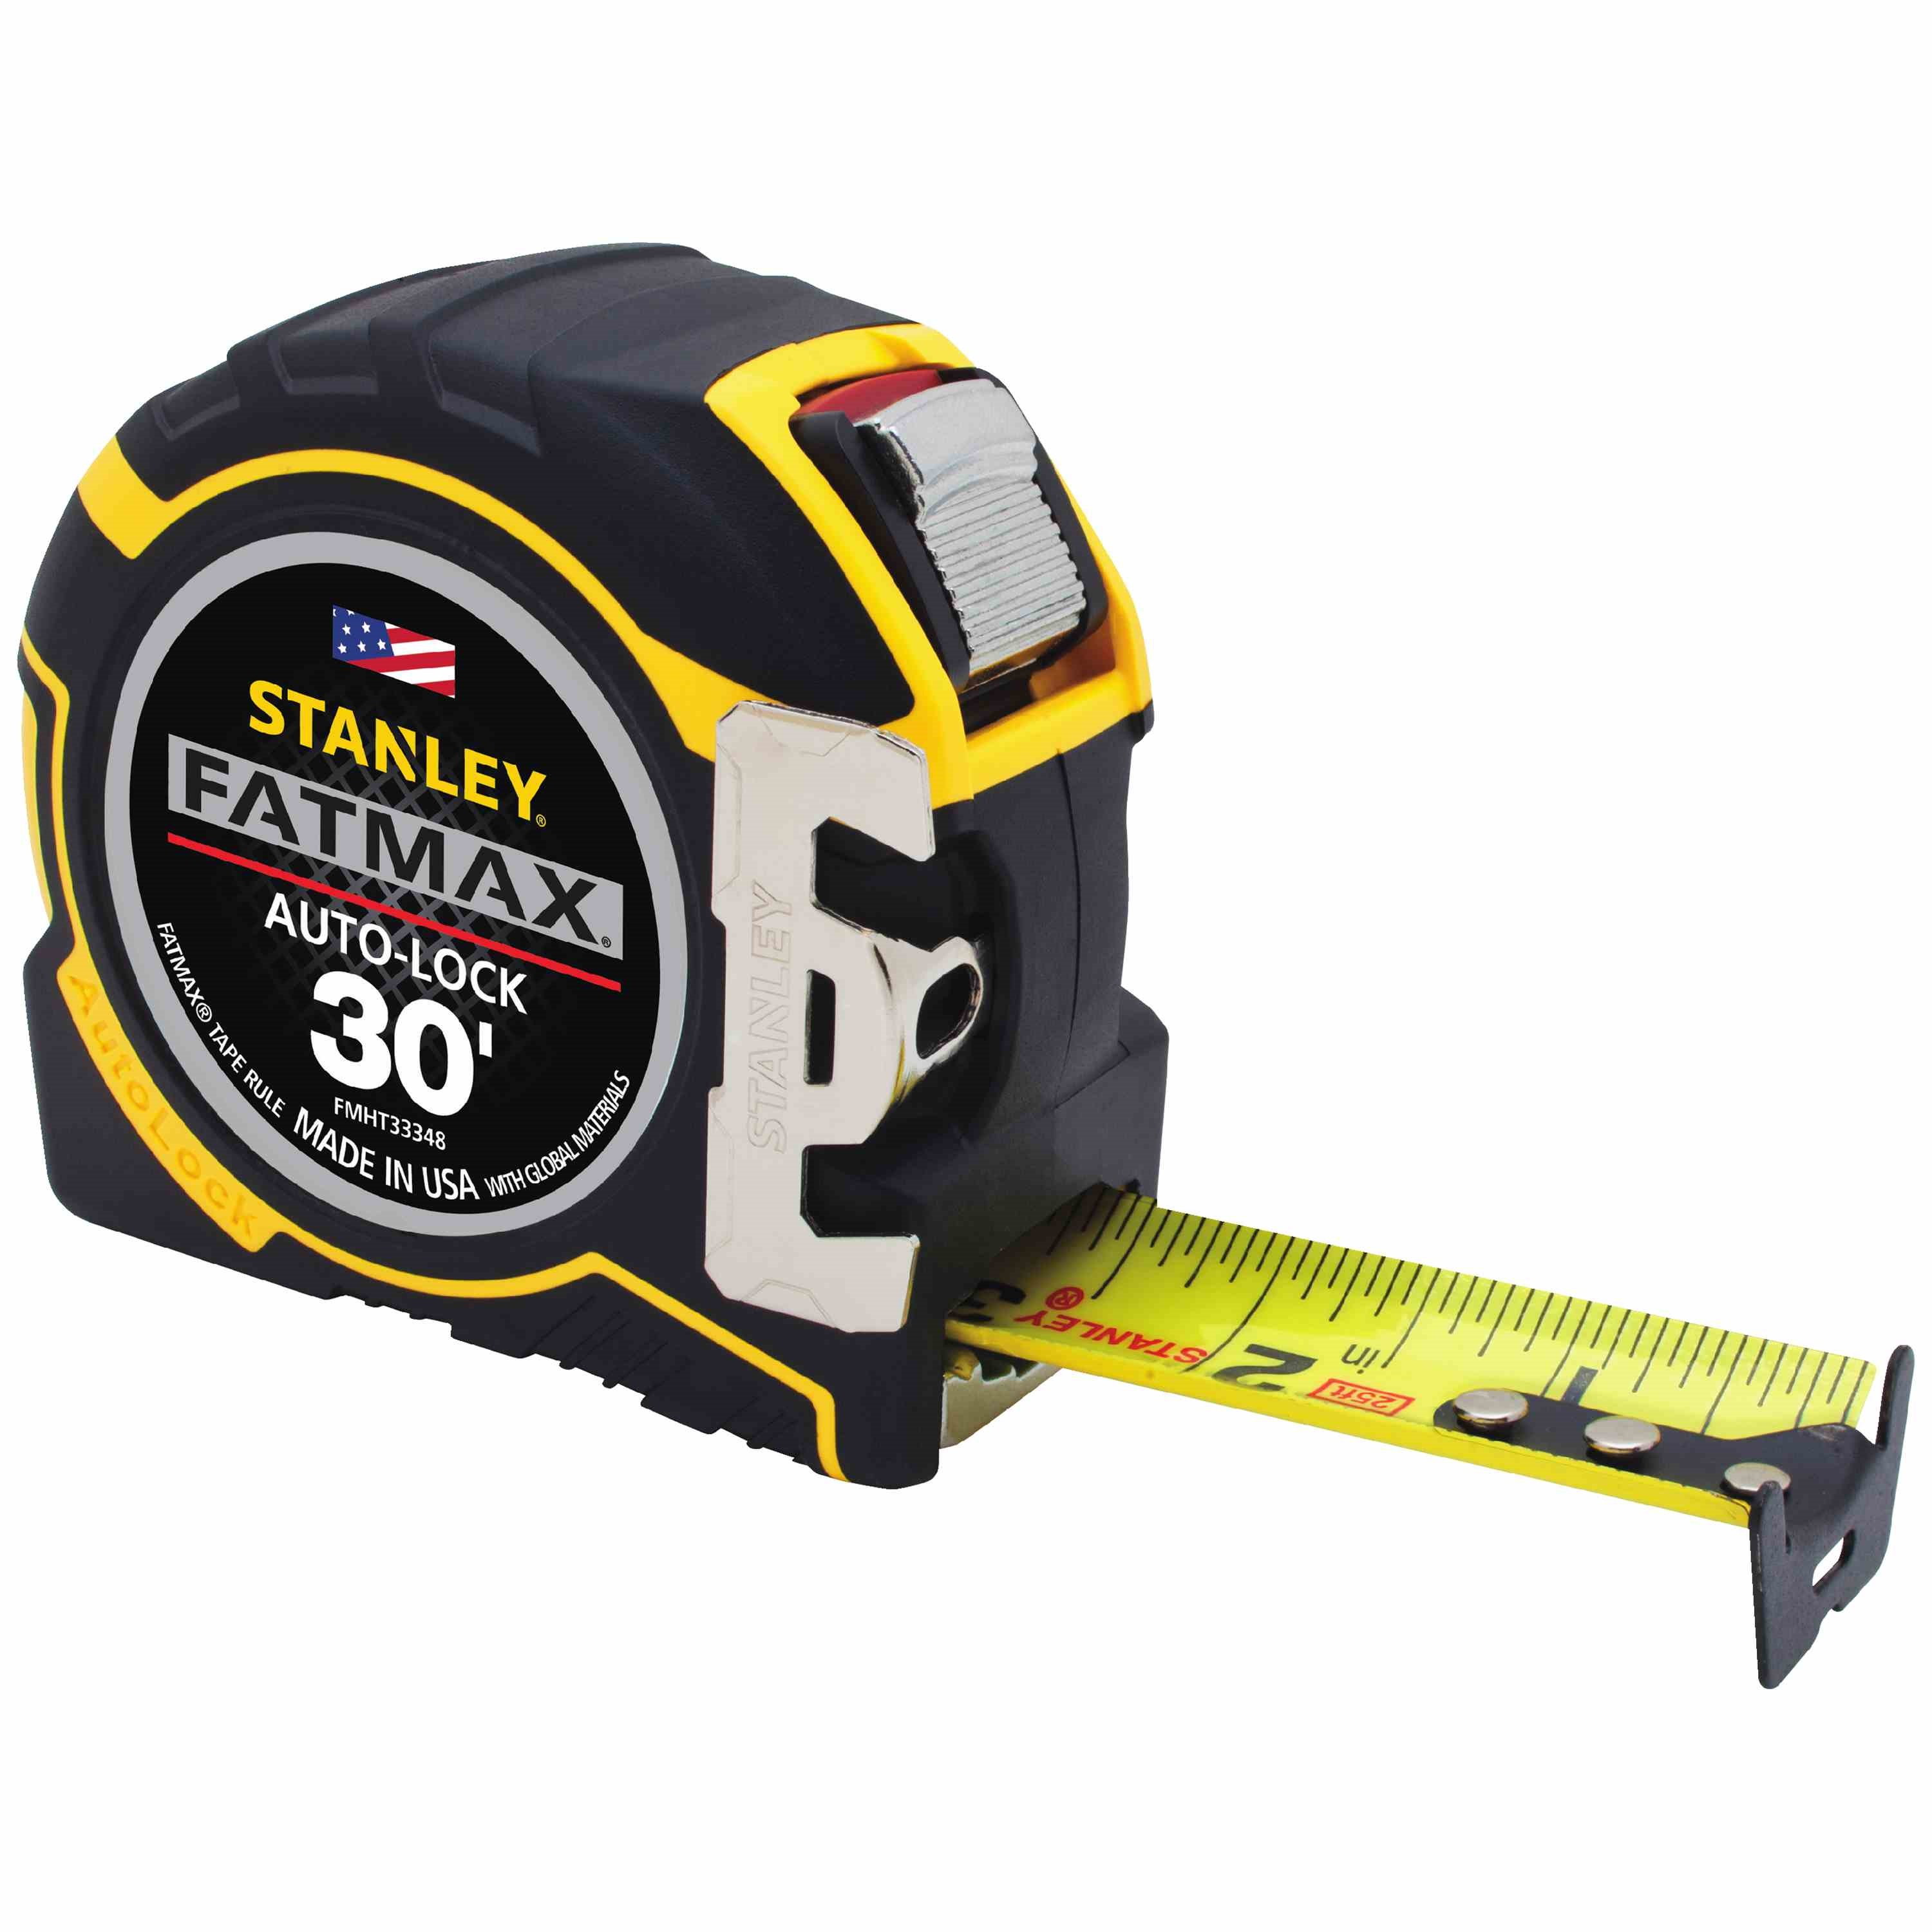 Stanley Tools - 30 ft FATMAX AutoLock Tape Measure - FMHT33348